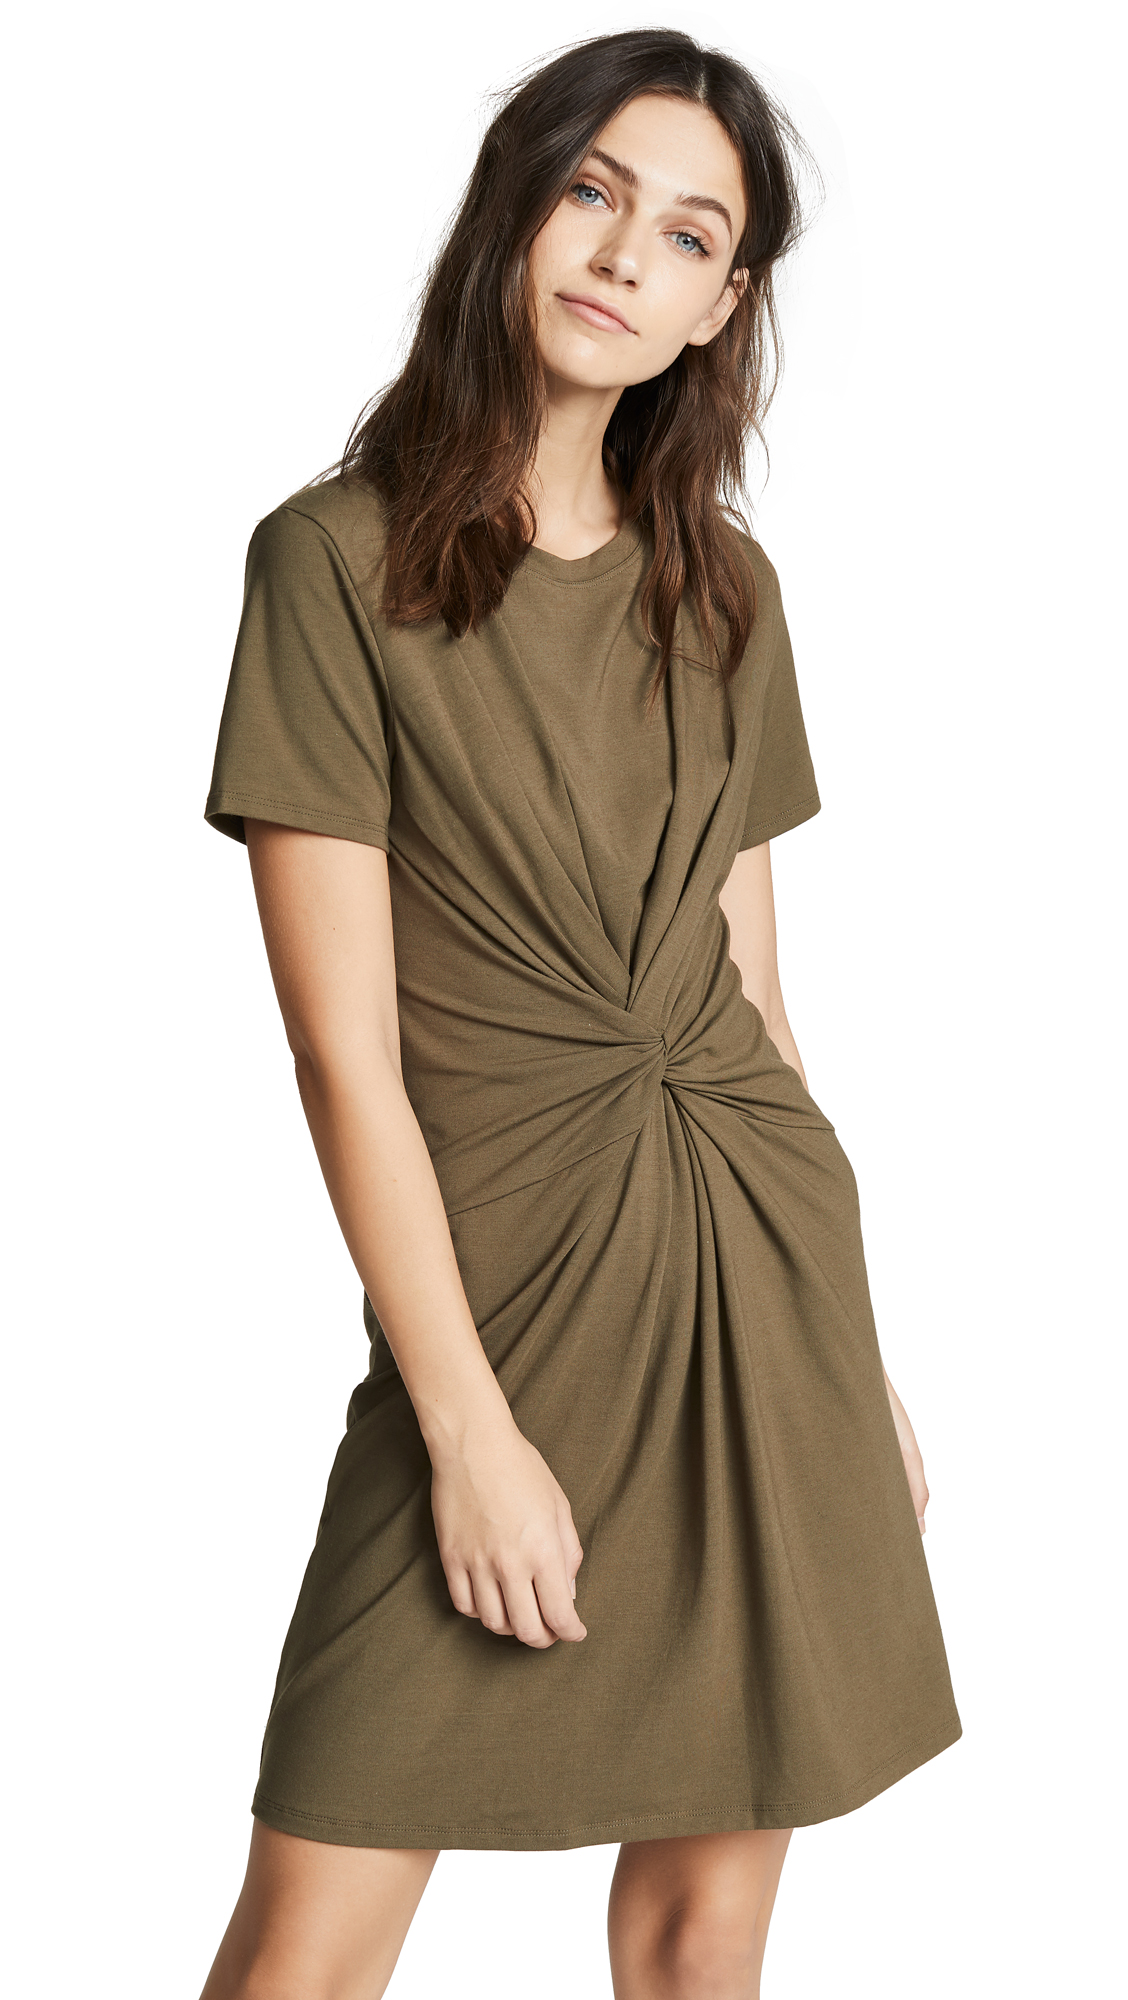 Theory Knot Tee Dress - Faded Army